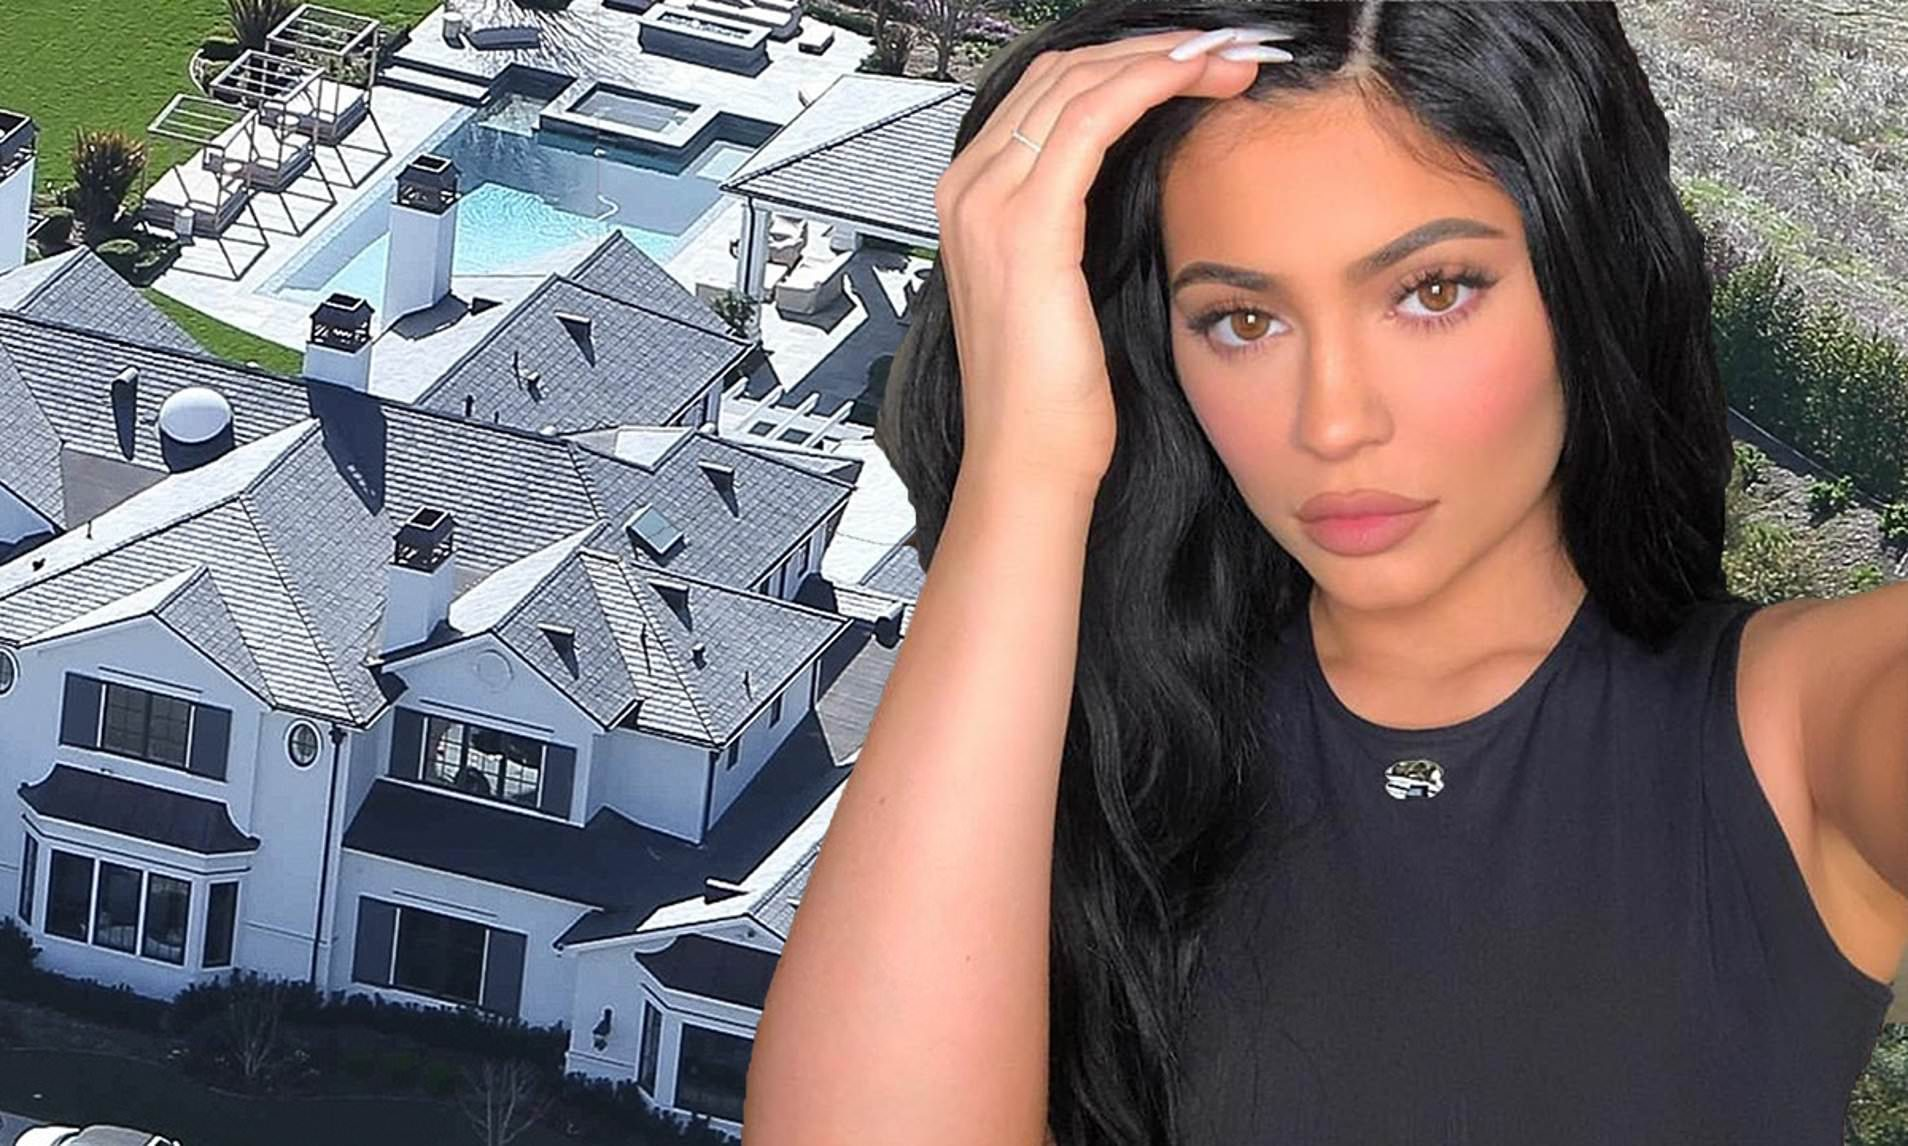 Kylie Jenner receives a security order against man sneaking into her neighbourhood to look for her